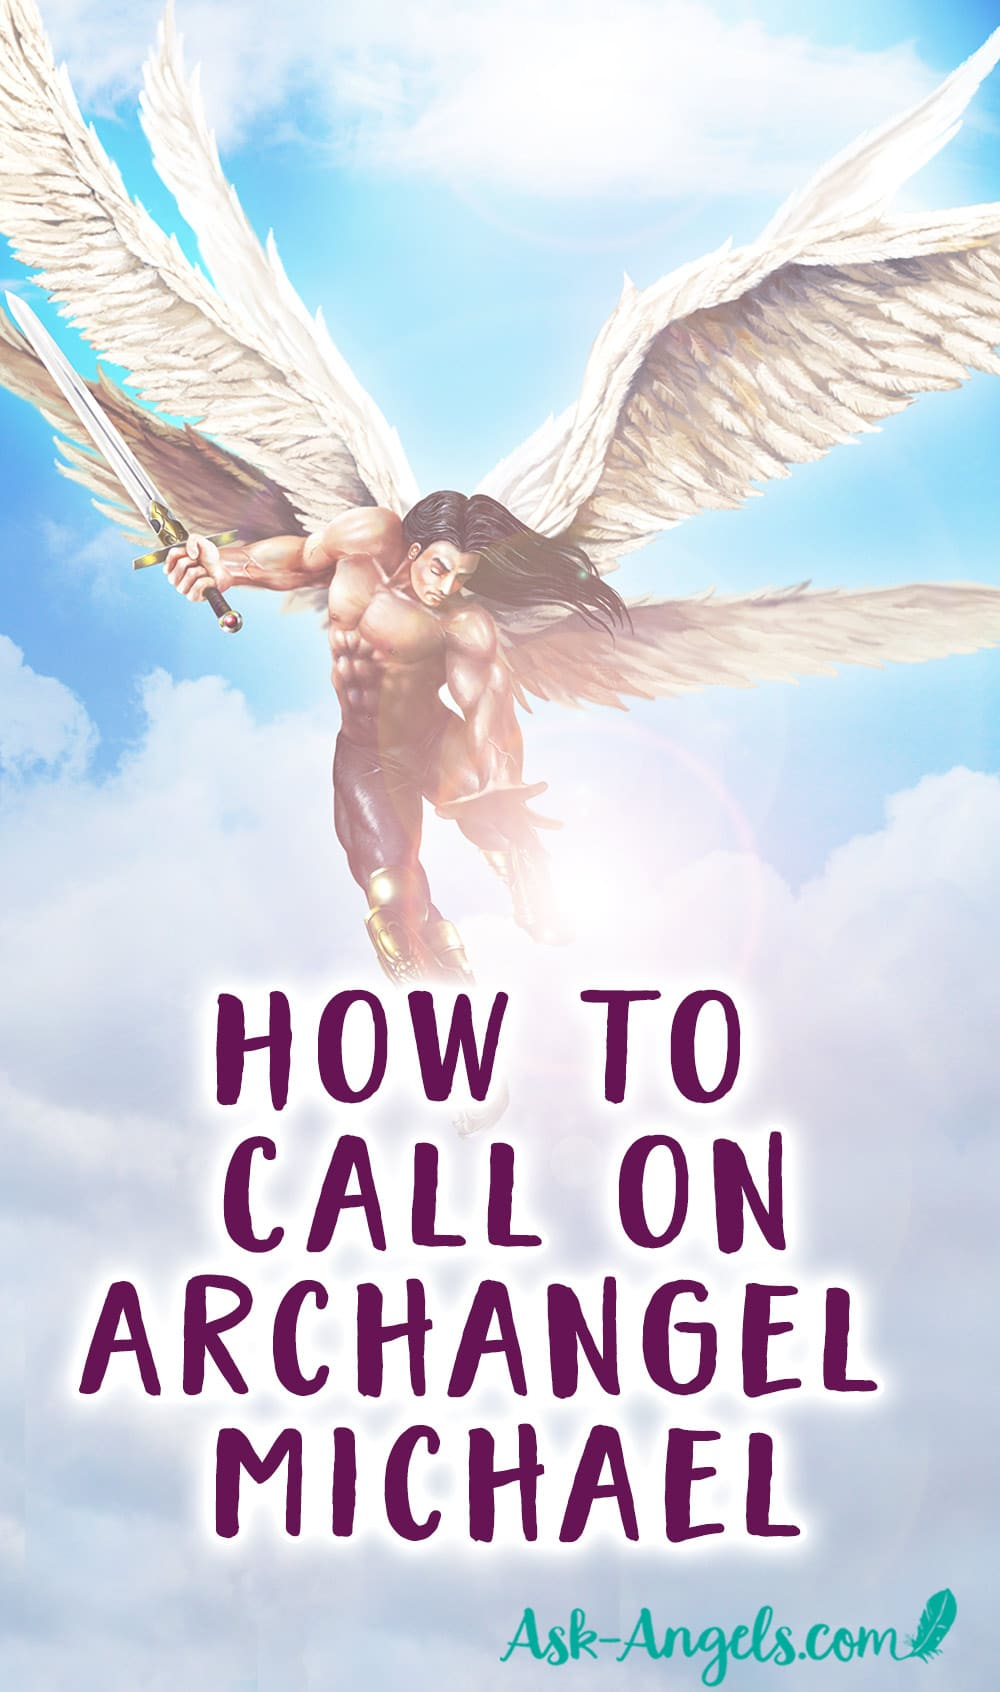 Archangel Michael: prayer for every day from evil forces 74